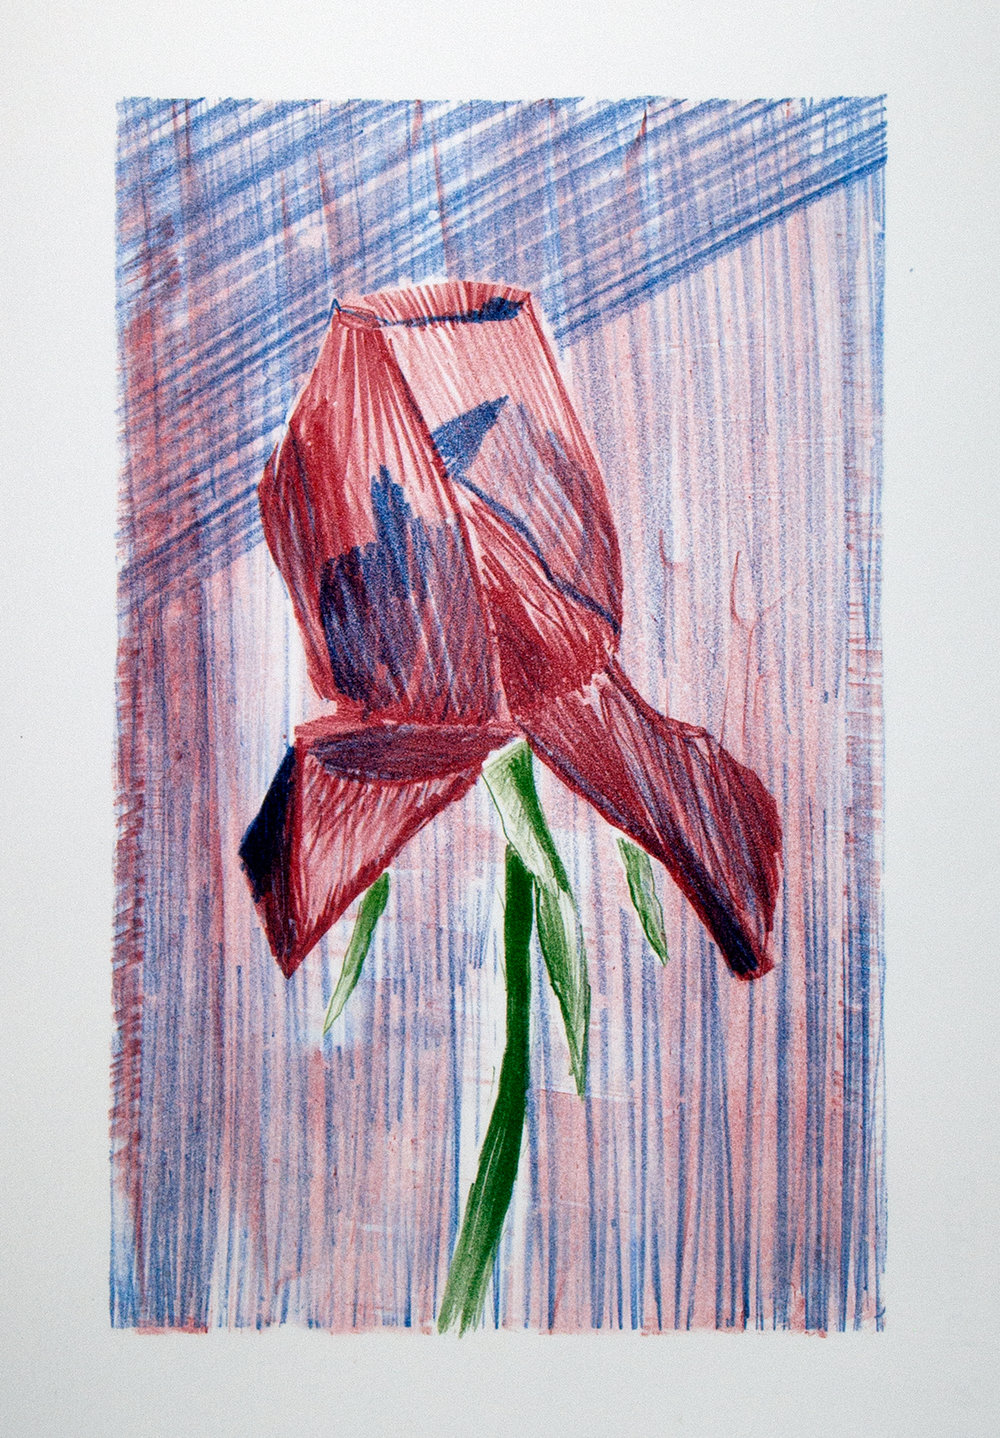 'Rose' from the  portfolio 'Alle Dinghe'  containing 6 lithographs